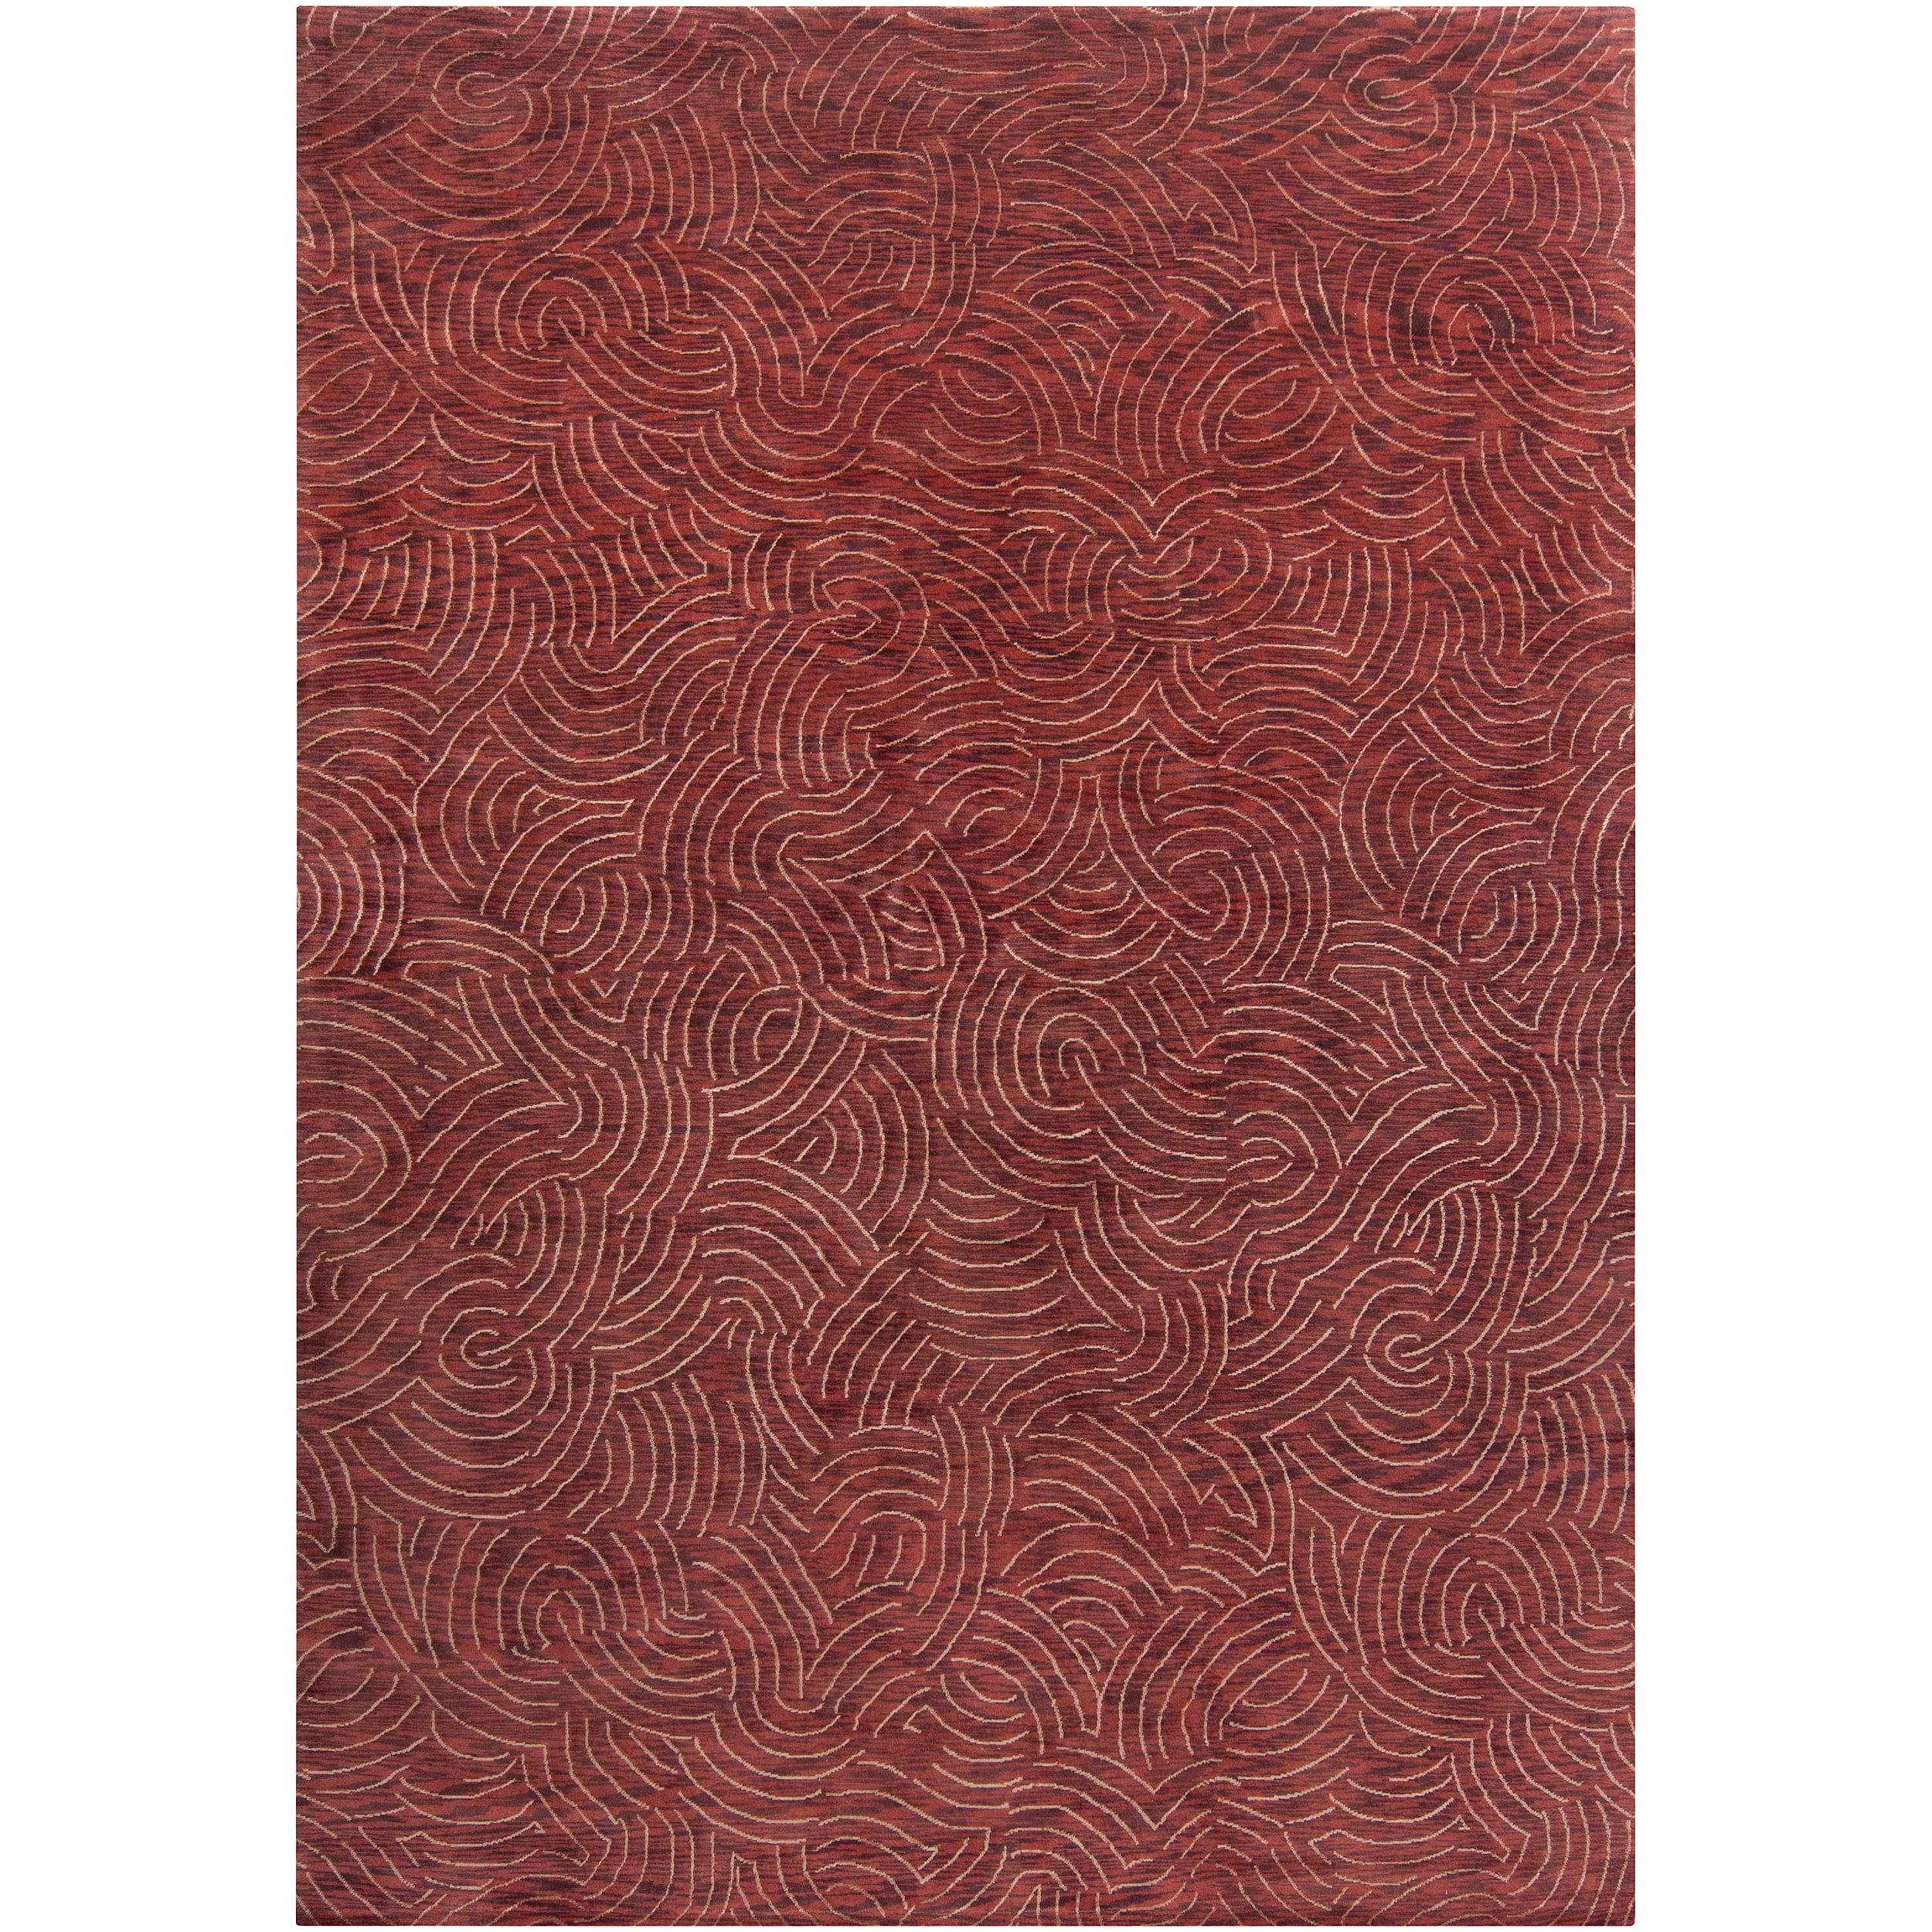 Hand-Knotted Multicolored Vilas Contemporary Abstract-Design Wool Area Rug - 5' x 8'